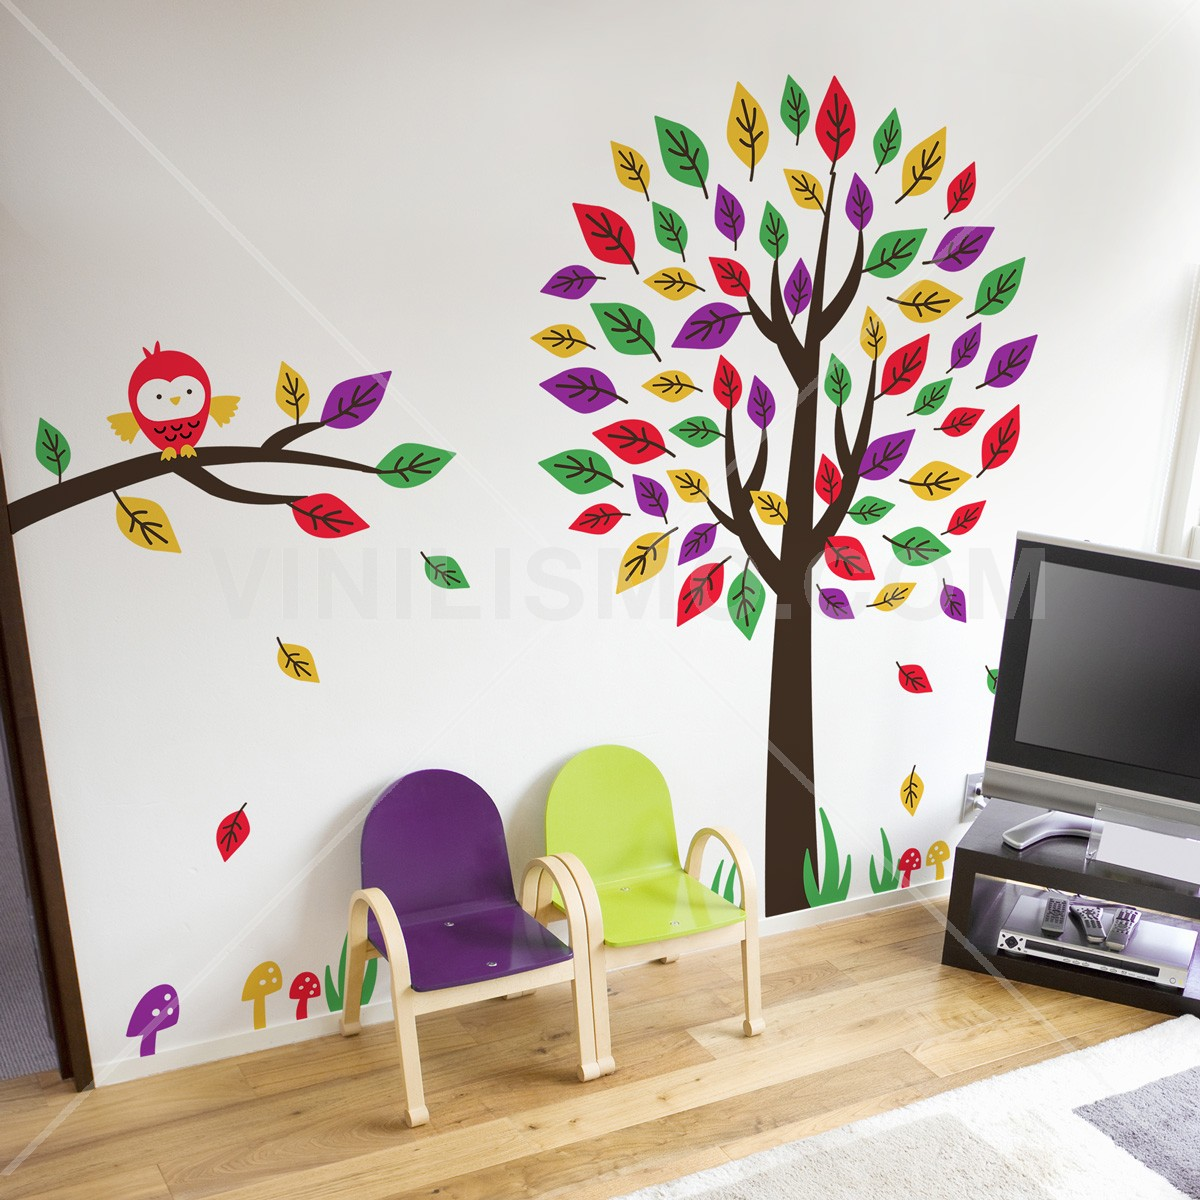 Vinilo decorativo rbol divertido - Vinilo decorativo arbol ...